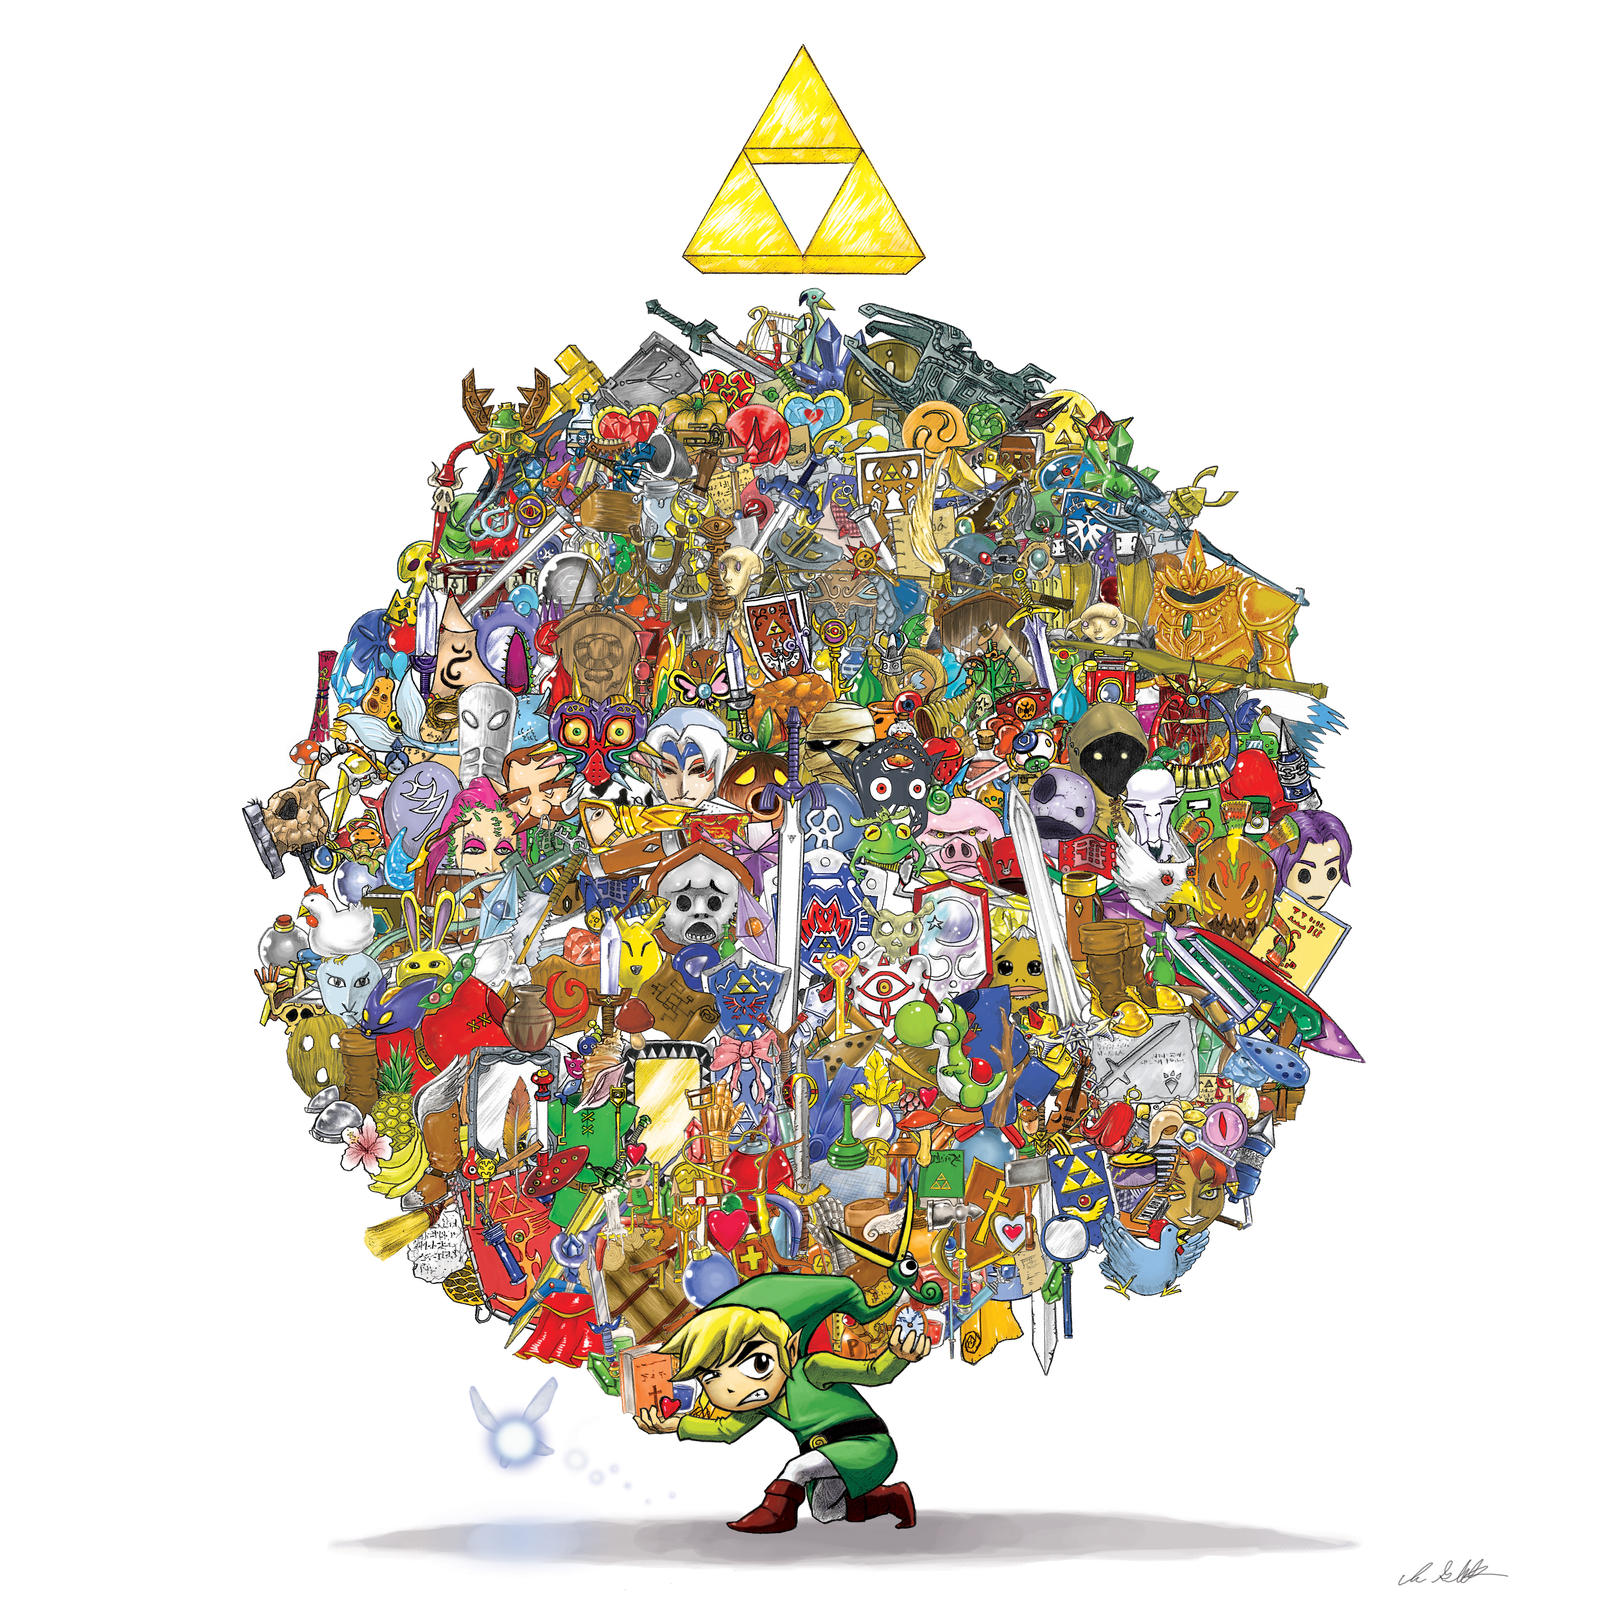 Link's Items